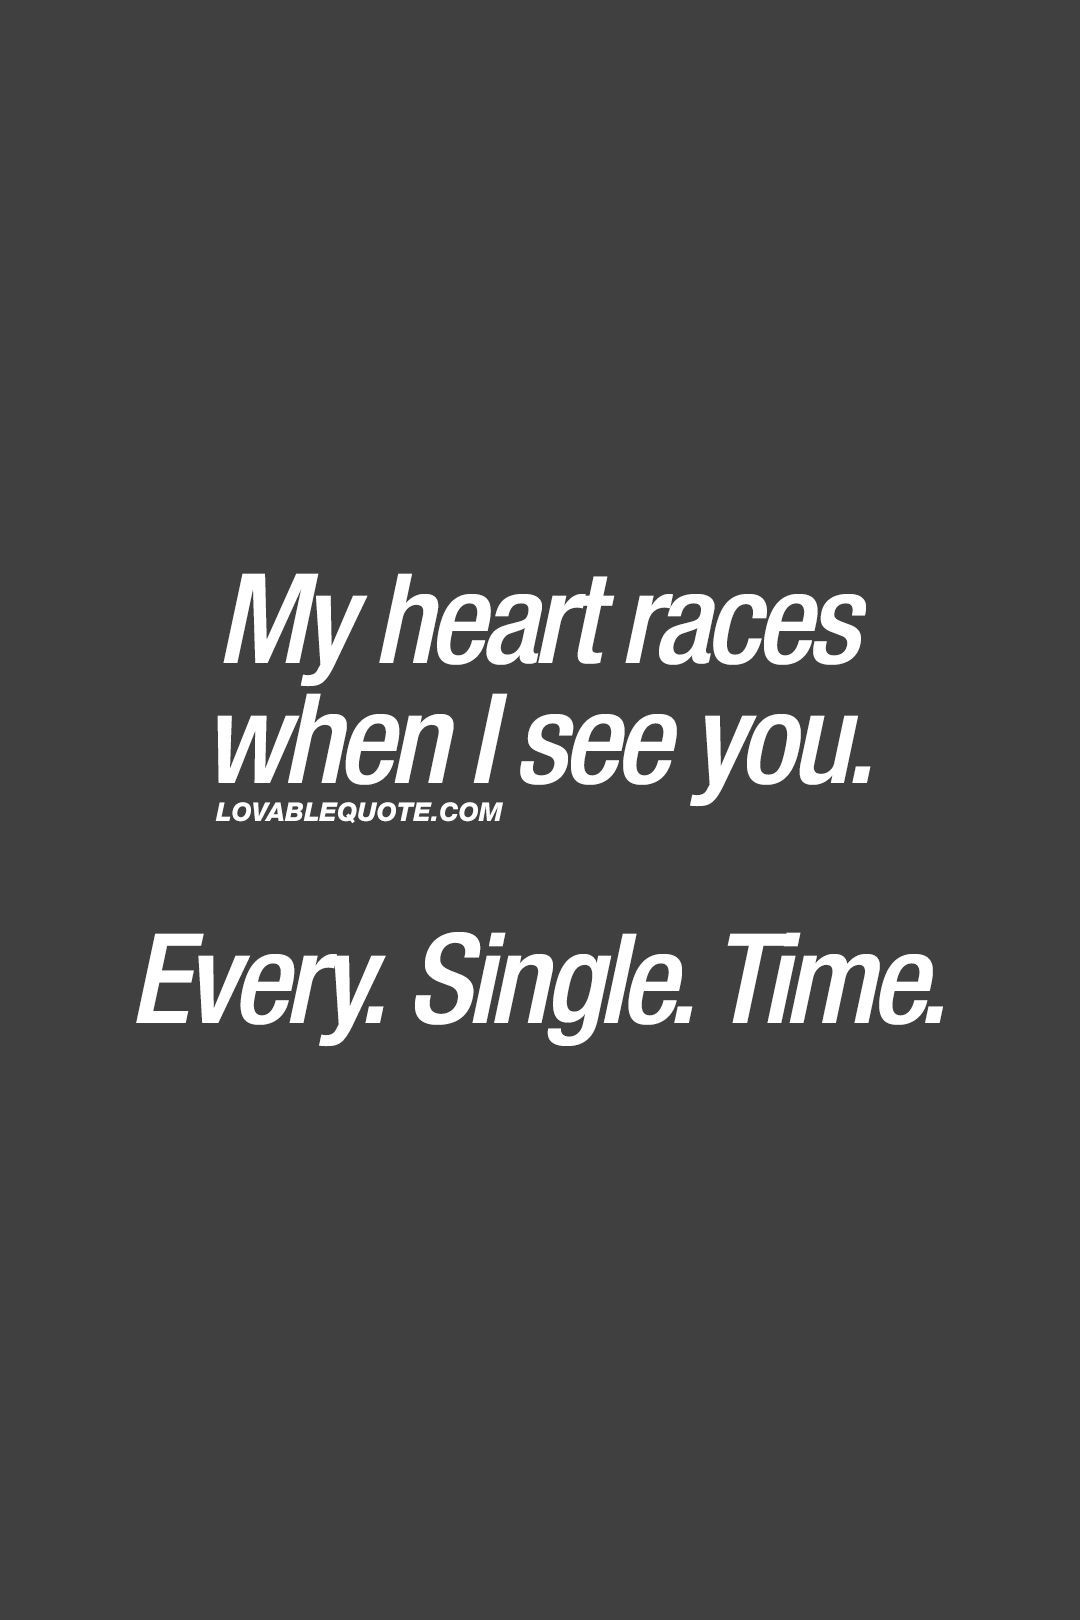 My heart races when I see you. Every. Single. Time. ❤ Everytime. ❤ #romantic #romanticquotes www.lovablequote.com for all our romantic love quotes for him and for her!